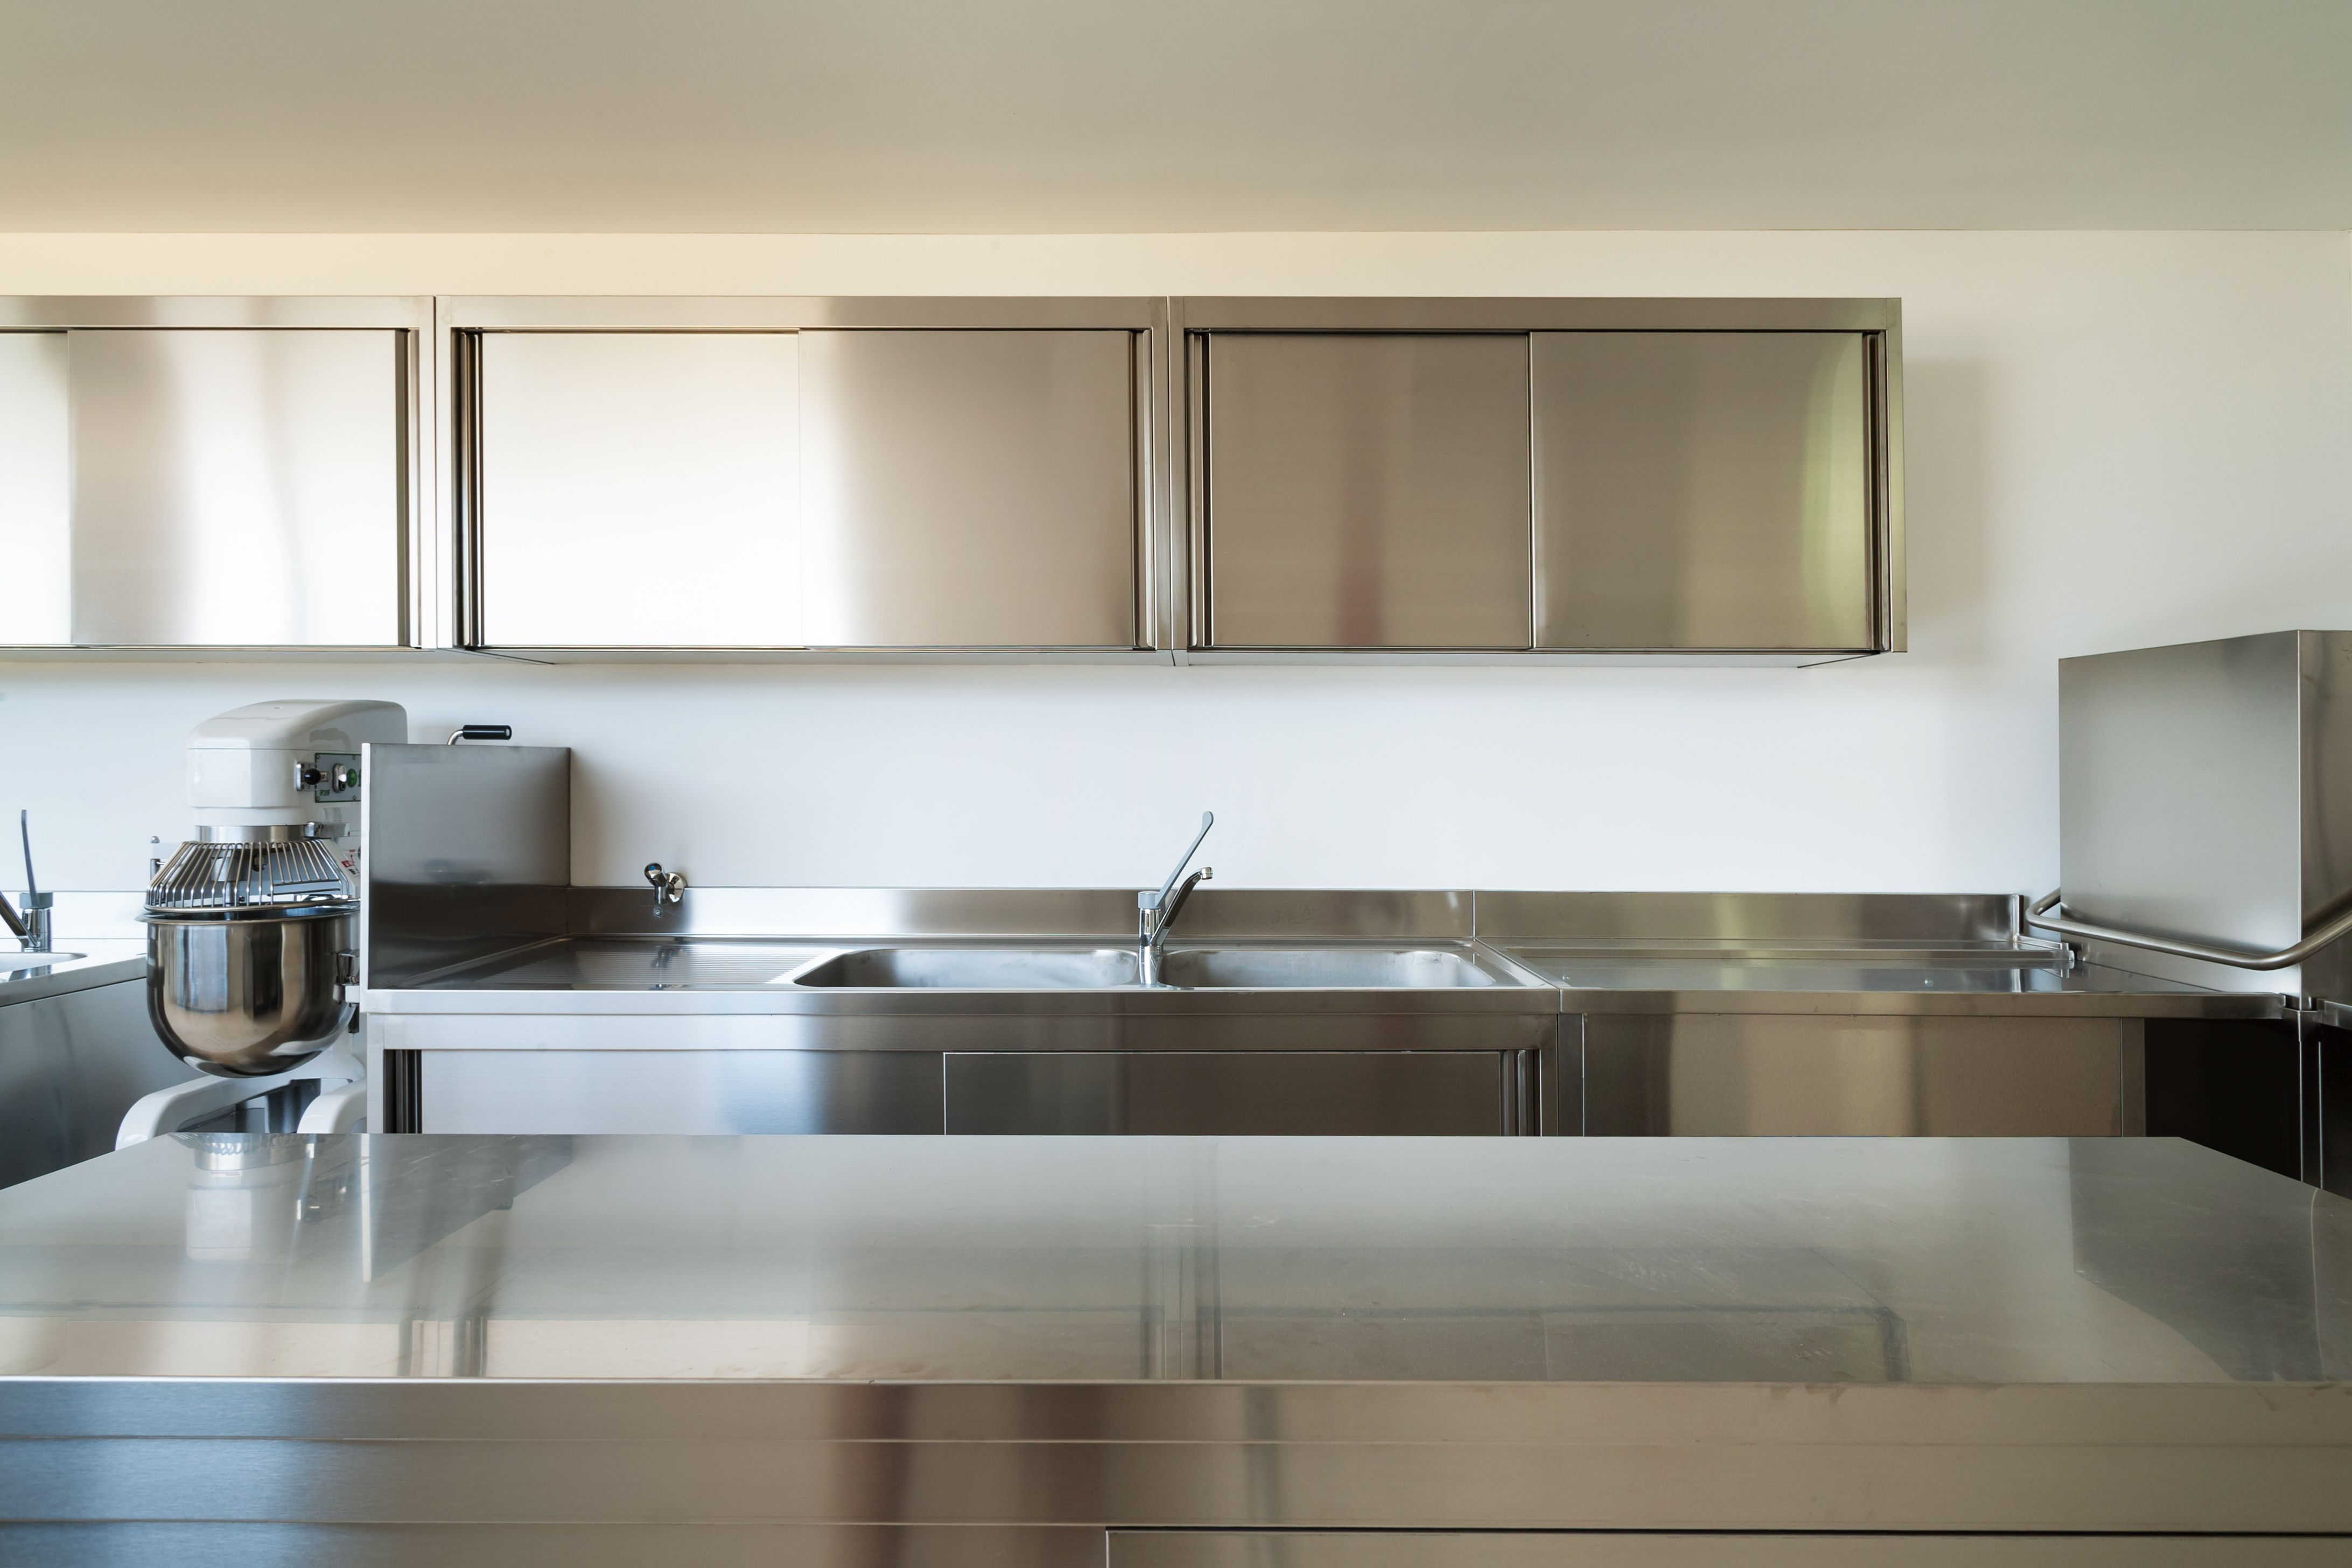 How To Clean Metal Cabinets Kitchen Cabinet Design Metal Kitchen Cabinets Steel Kitchen Cabinets